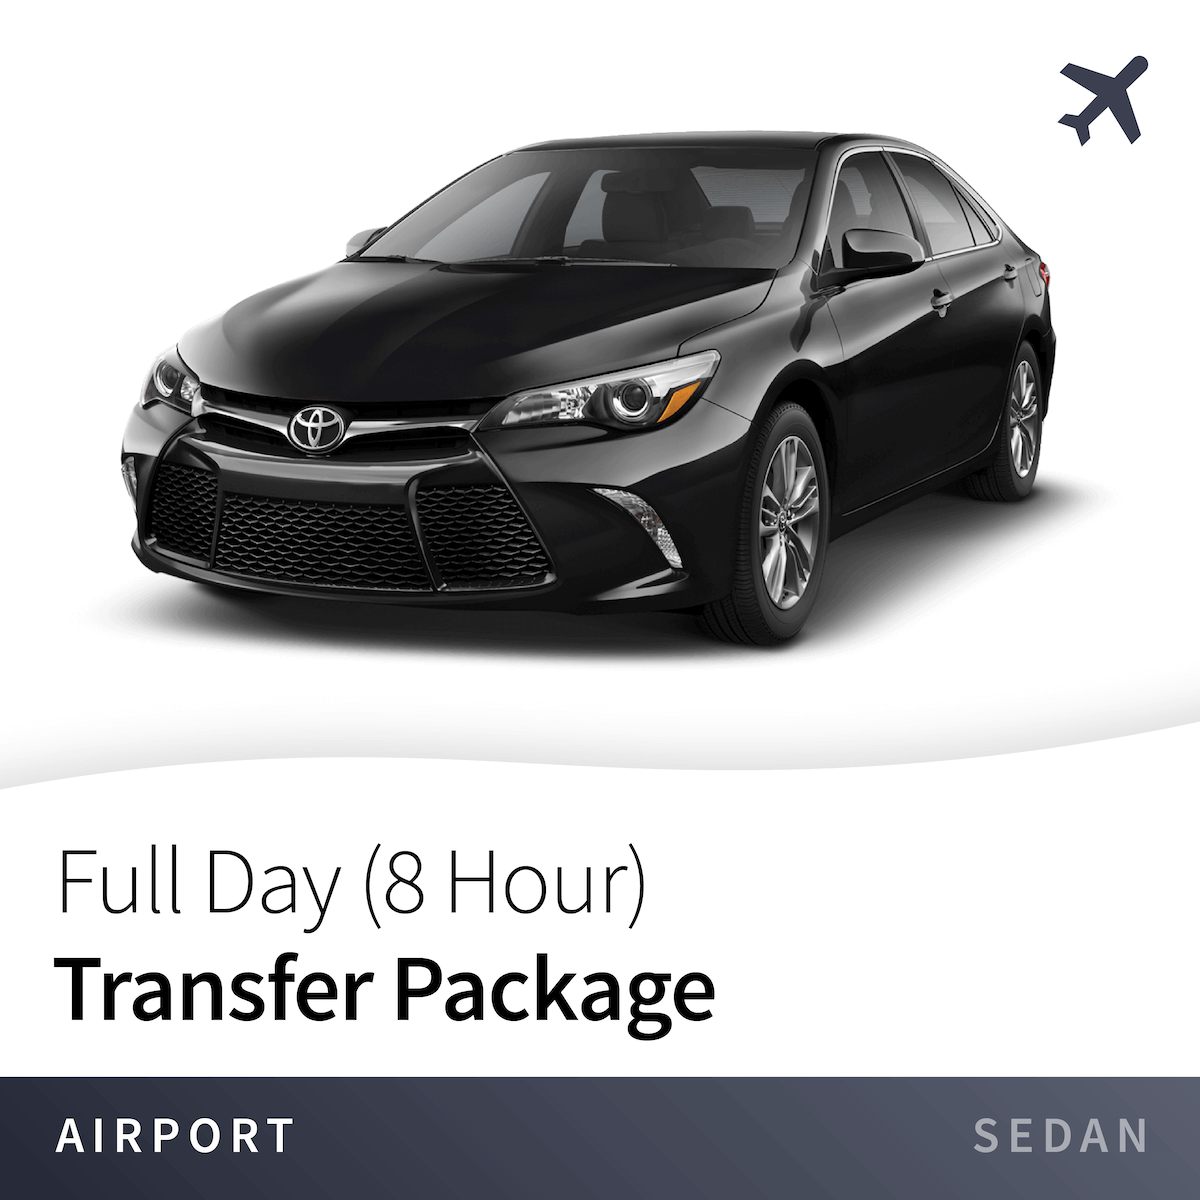 Full Day (8 Hour) Transfer Package From Airport - Sedan 16